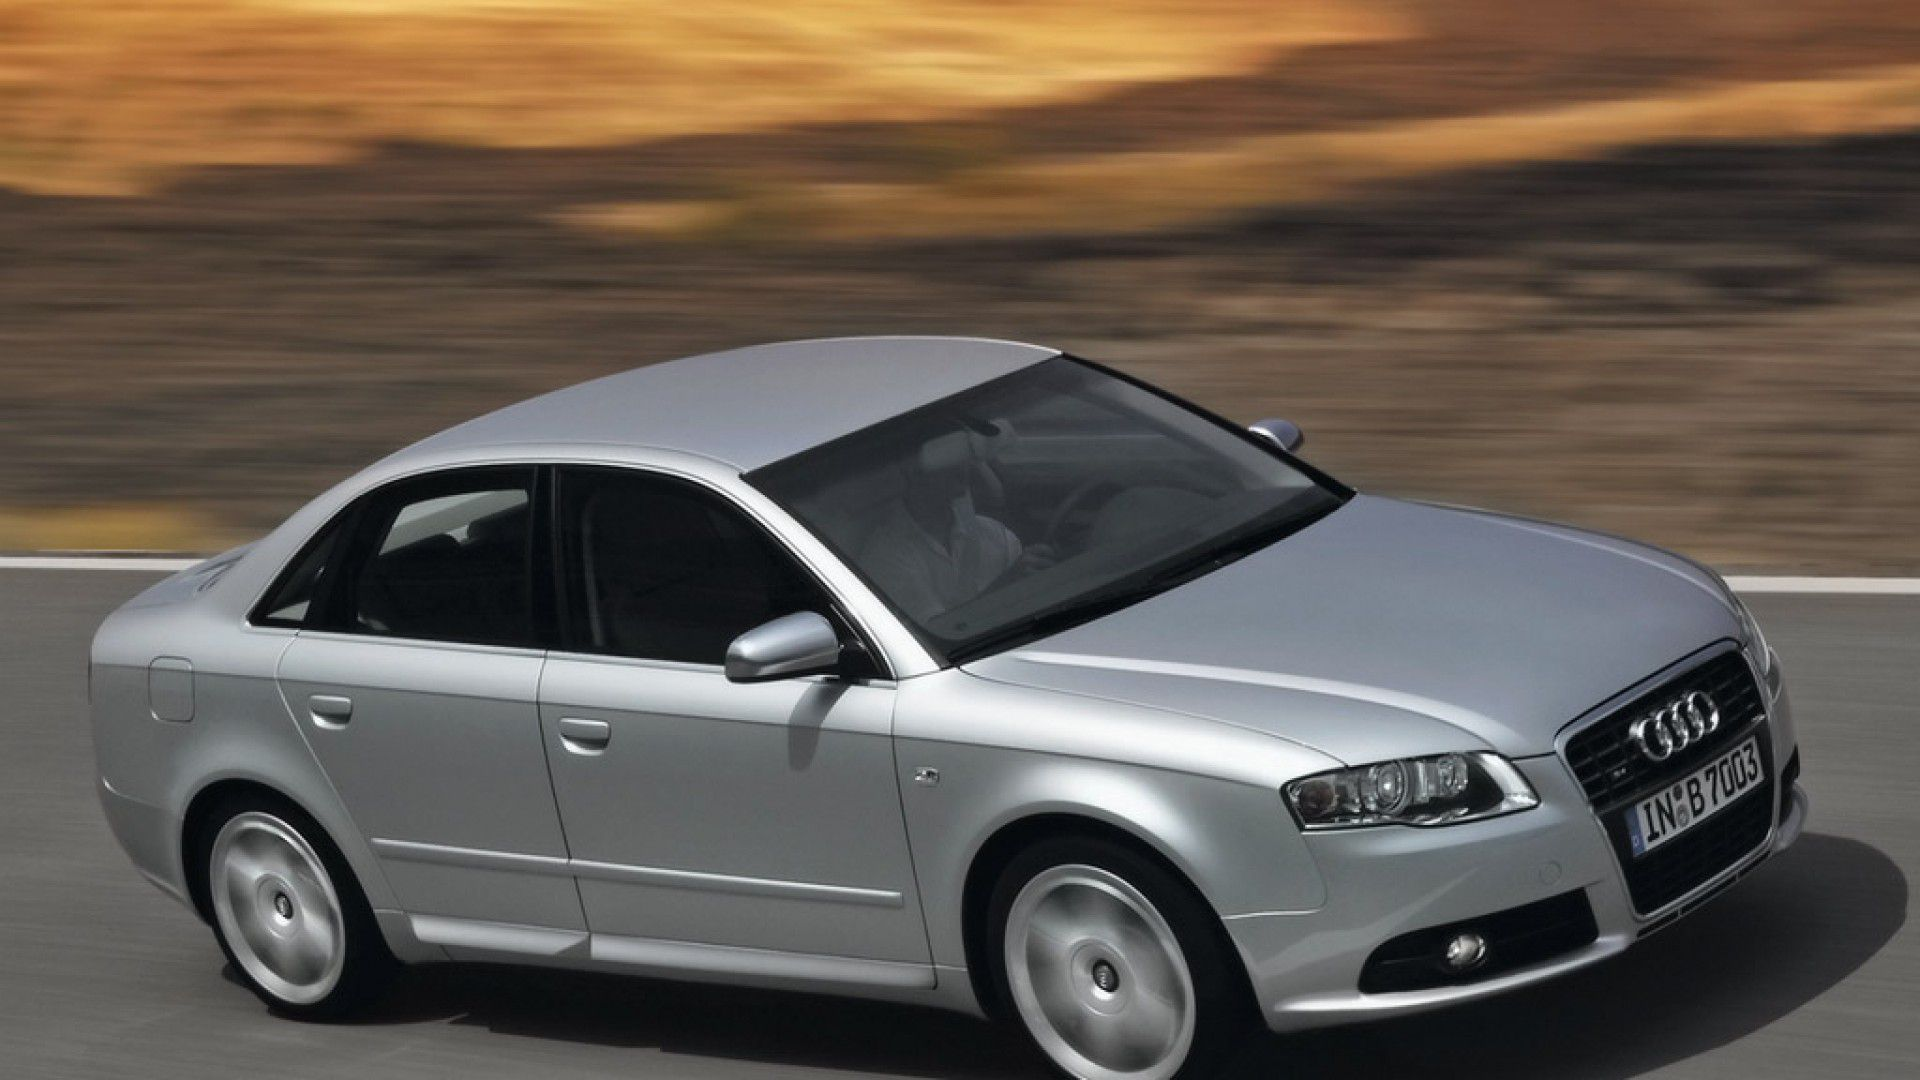 Audi S4 (2002 to 2005)